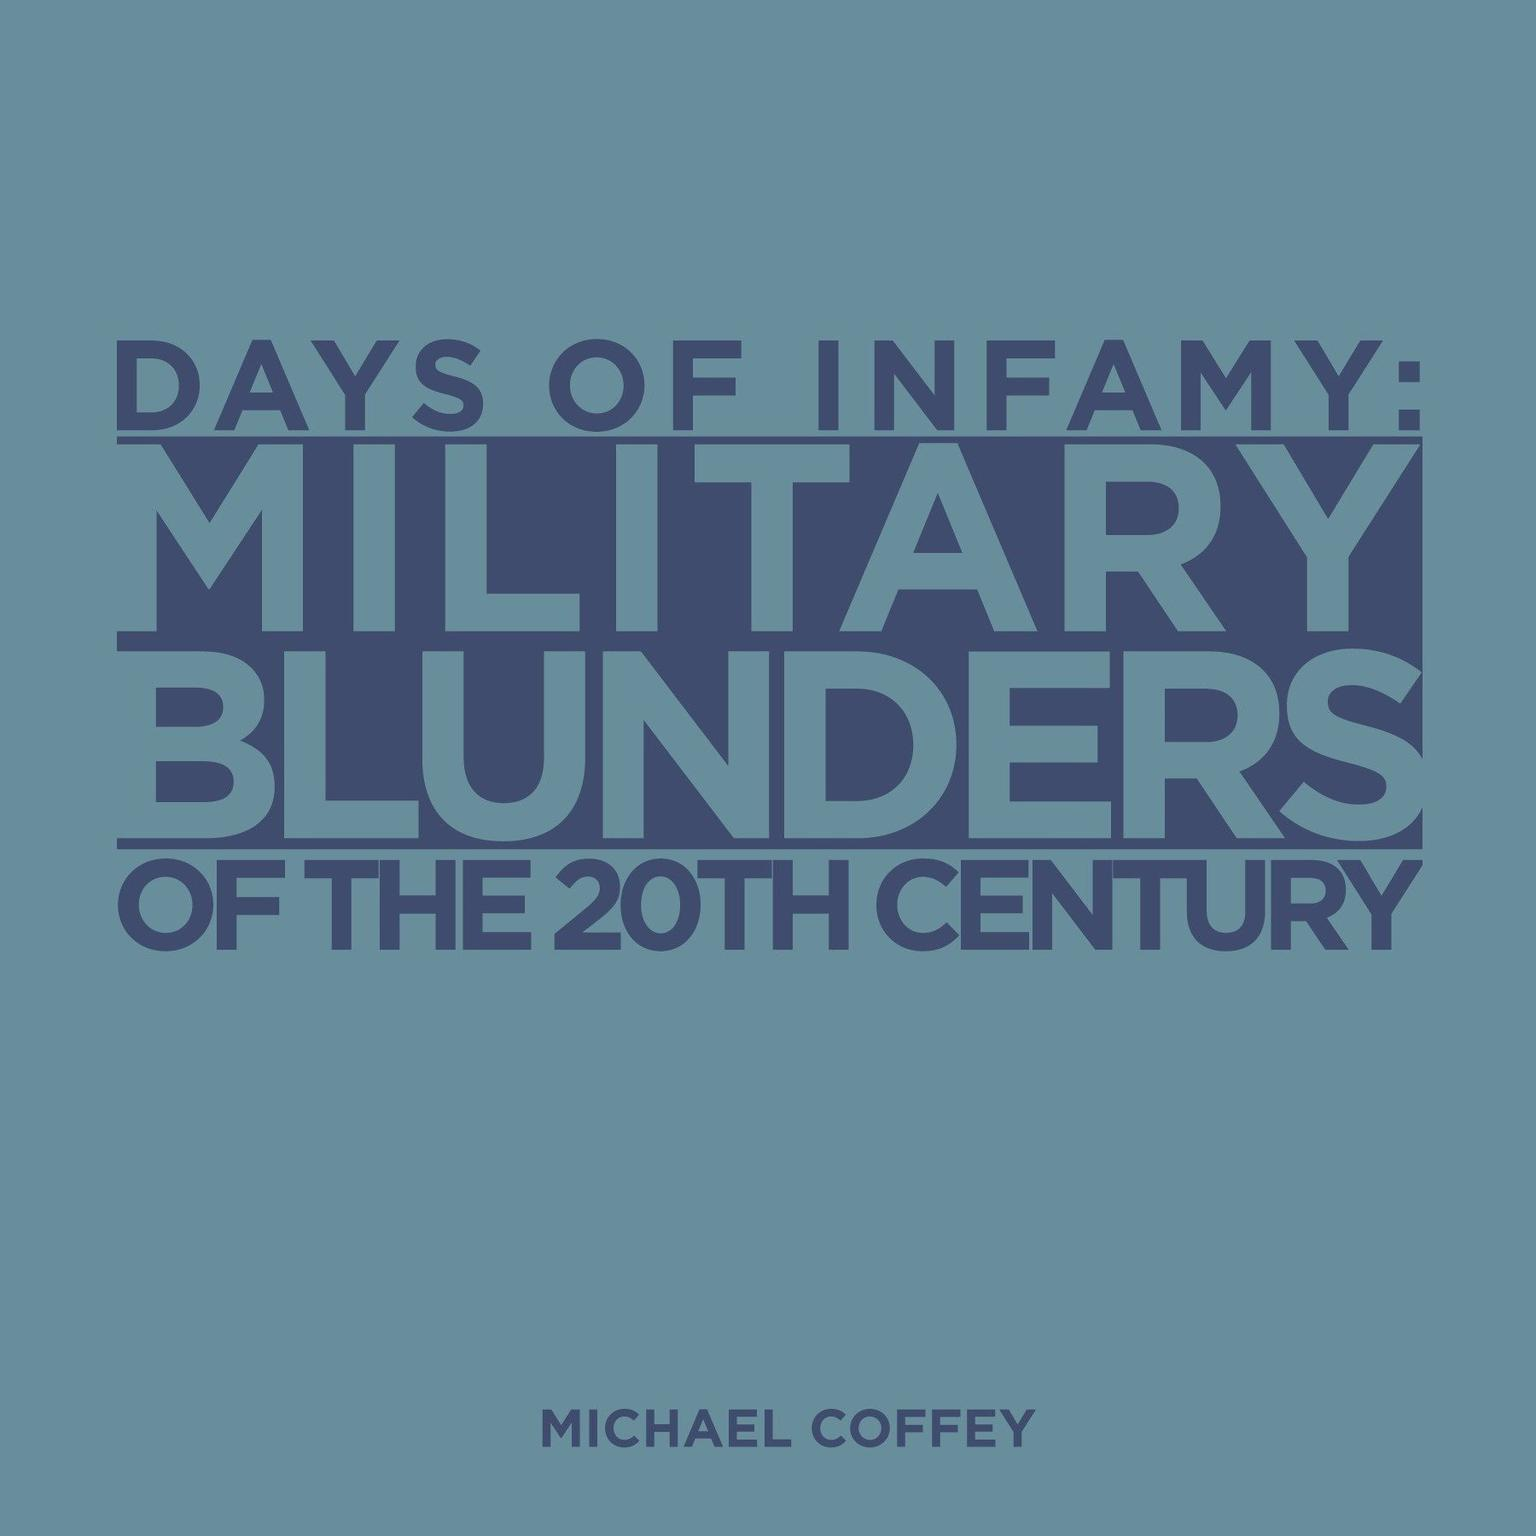 Printable Days of Infamy:  Military Blunders of the 20th Century Audiobook Cover Art